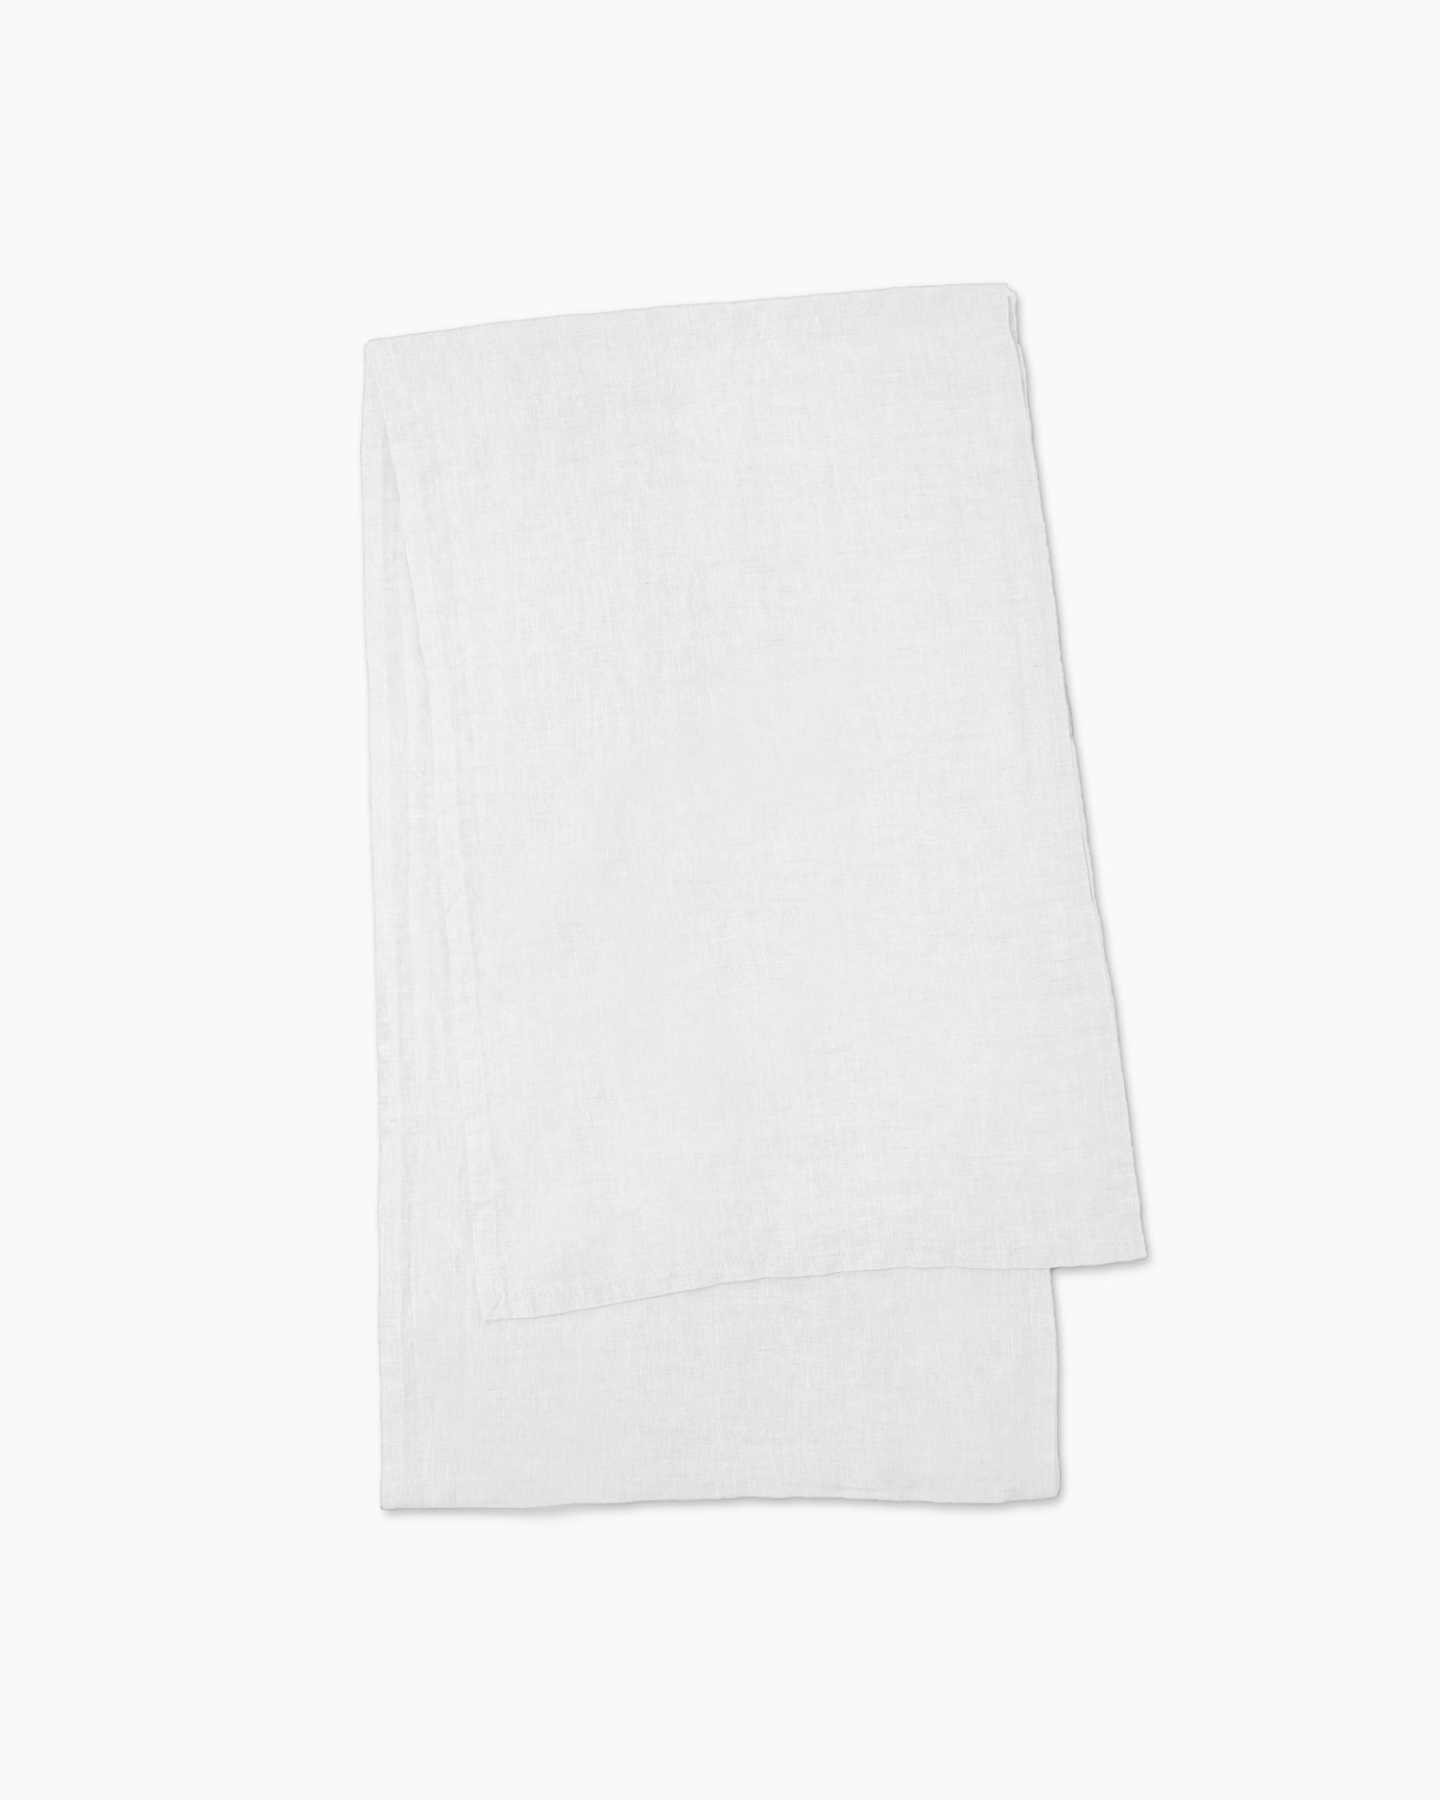 Belgian Linen Table Runner - White - 3